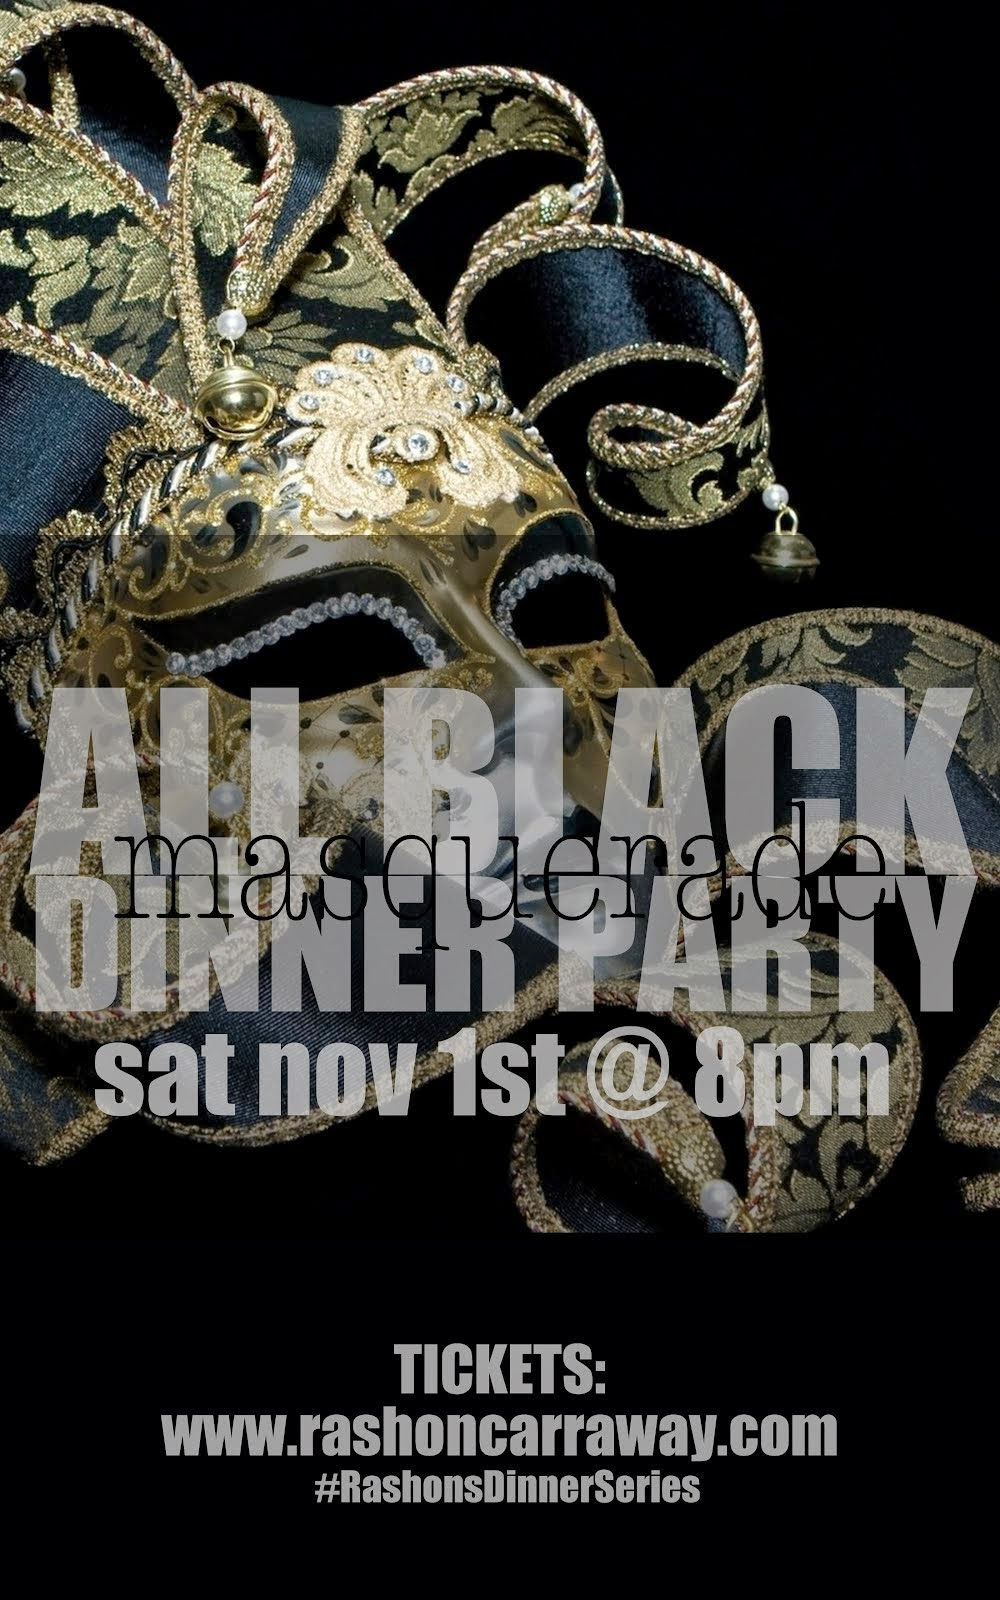 ALL BLACK DINNER PARTY